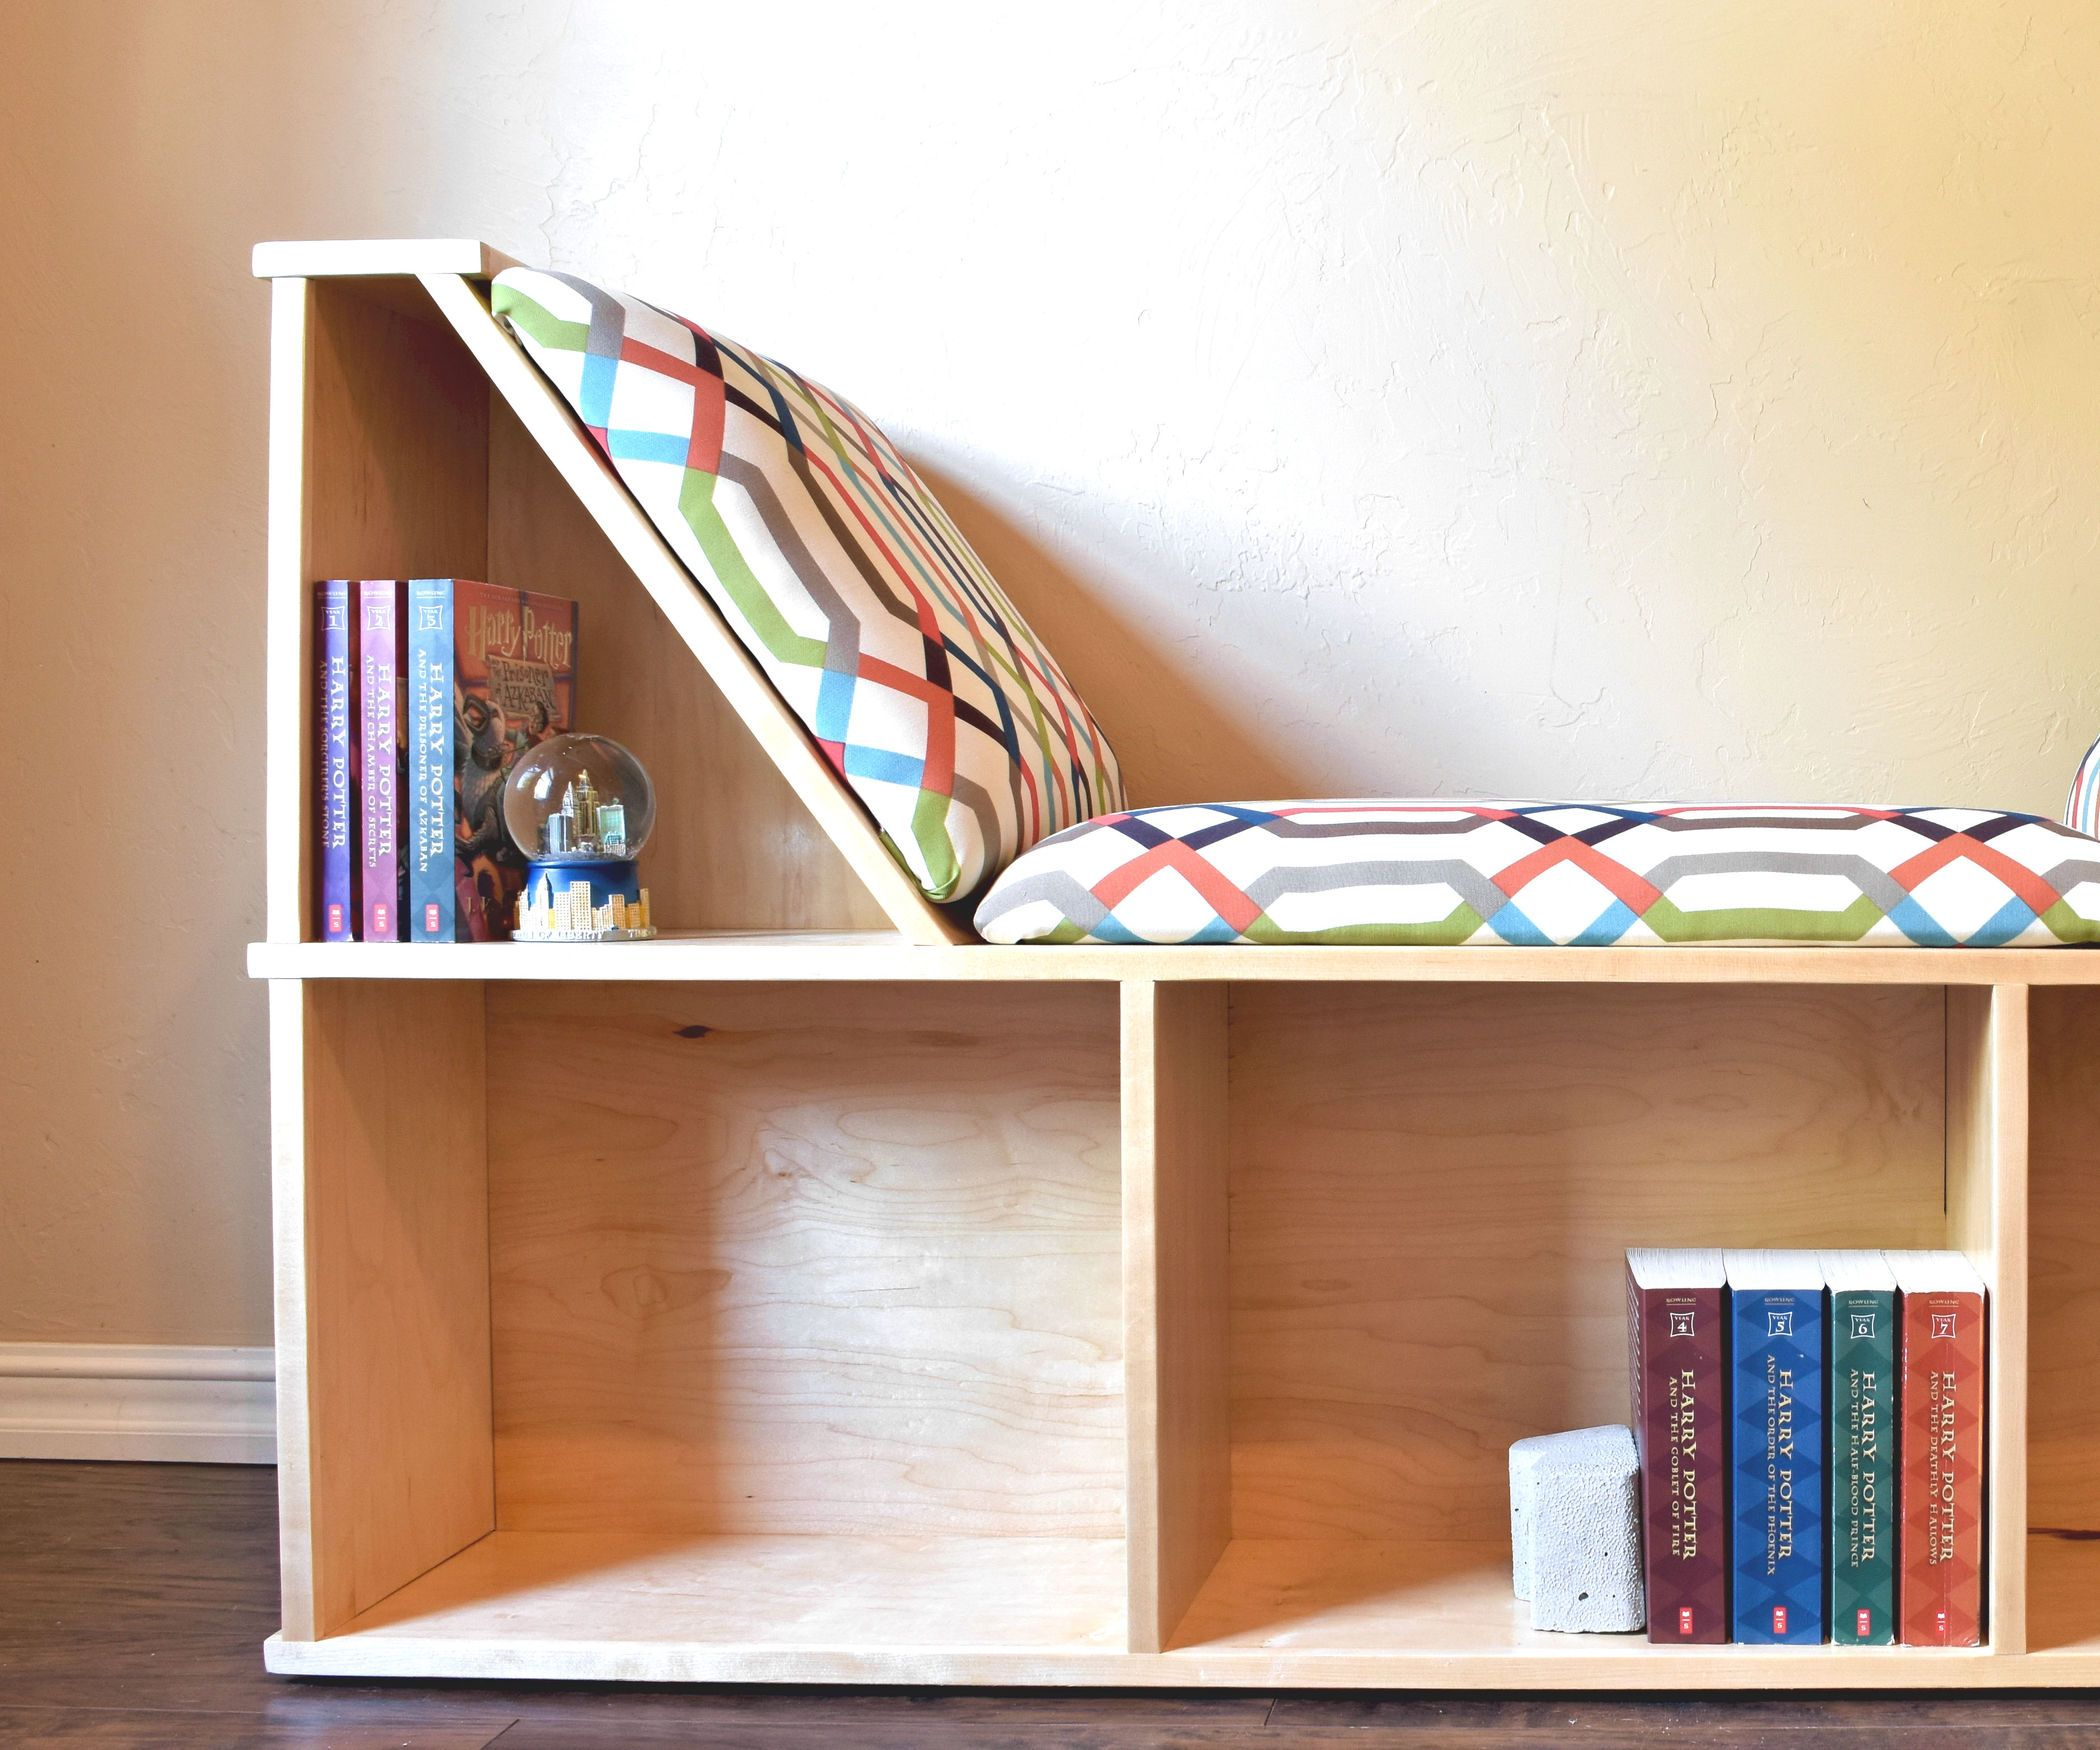 How To Build An Awesome Reading Nook With Book Storage Bookshelves Diy Reading Nook Diy Diy Bookshelf Kids